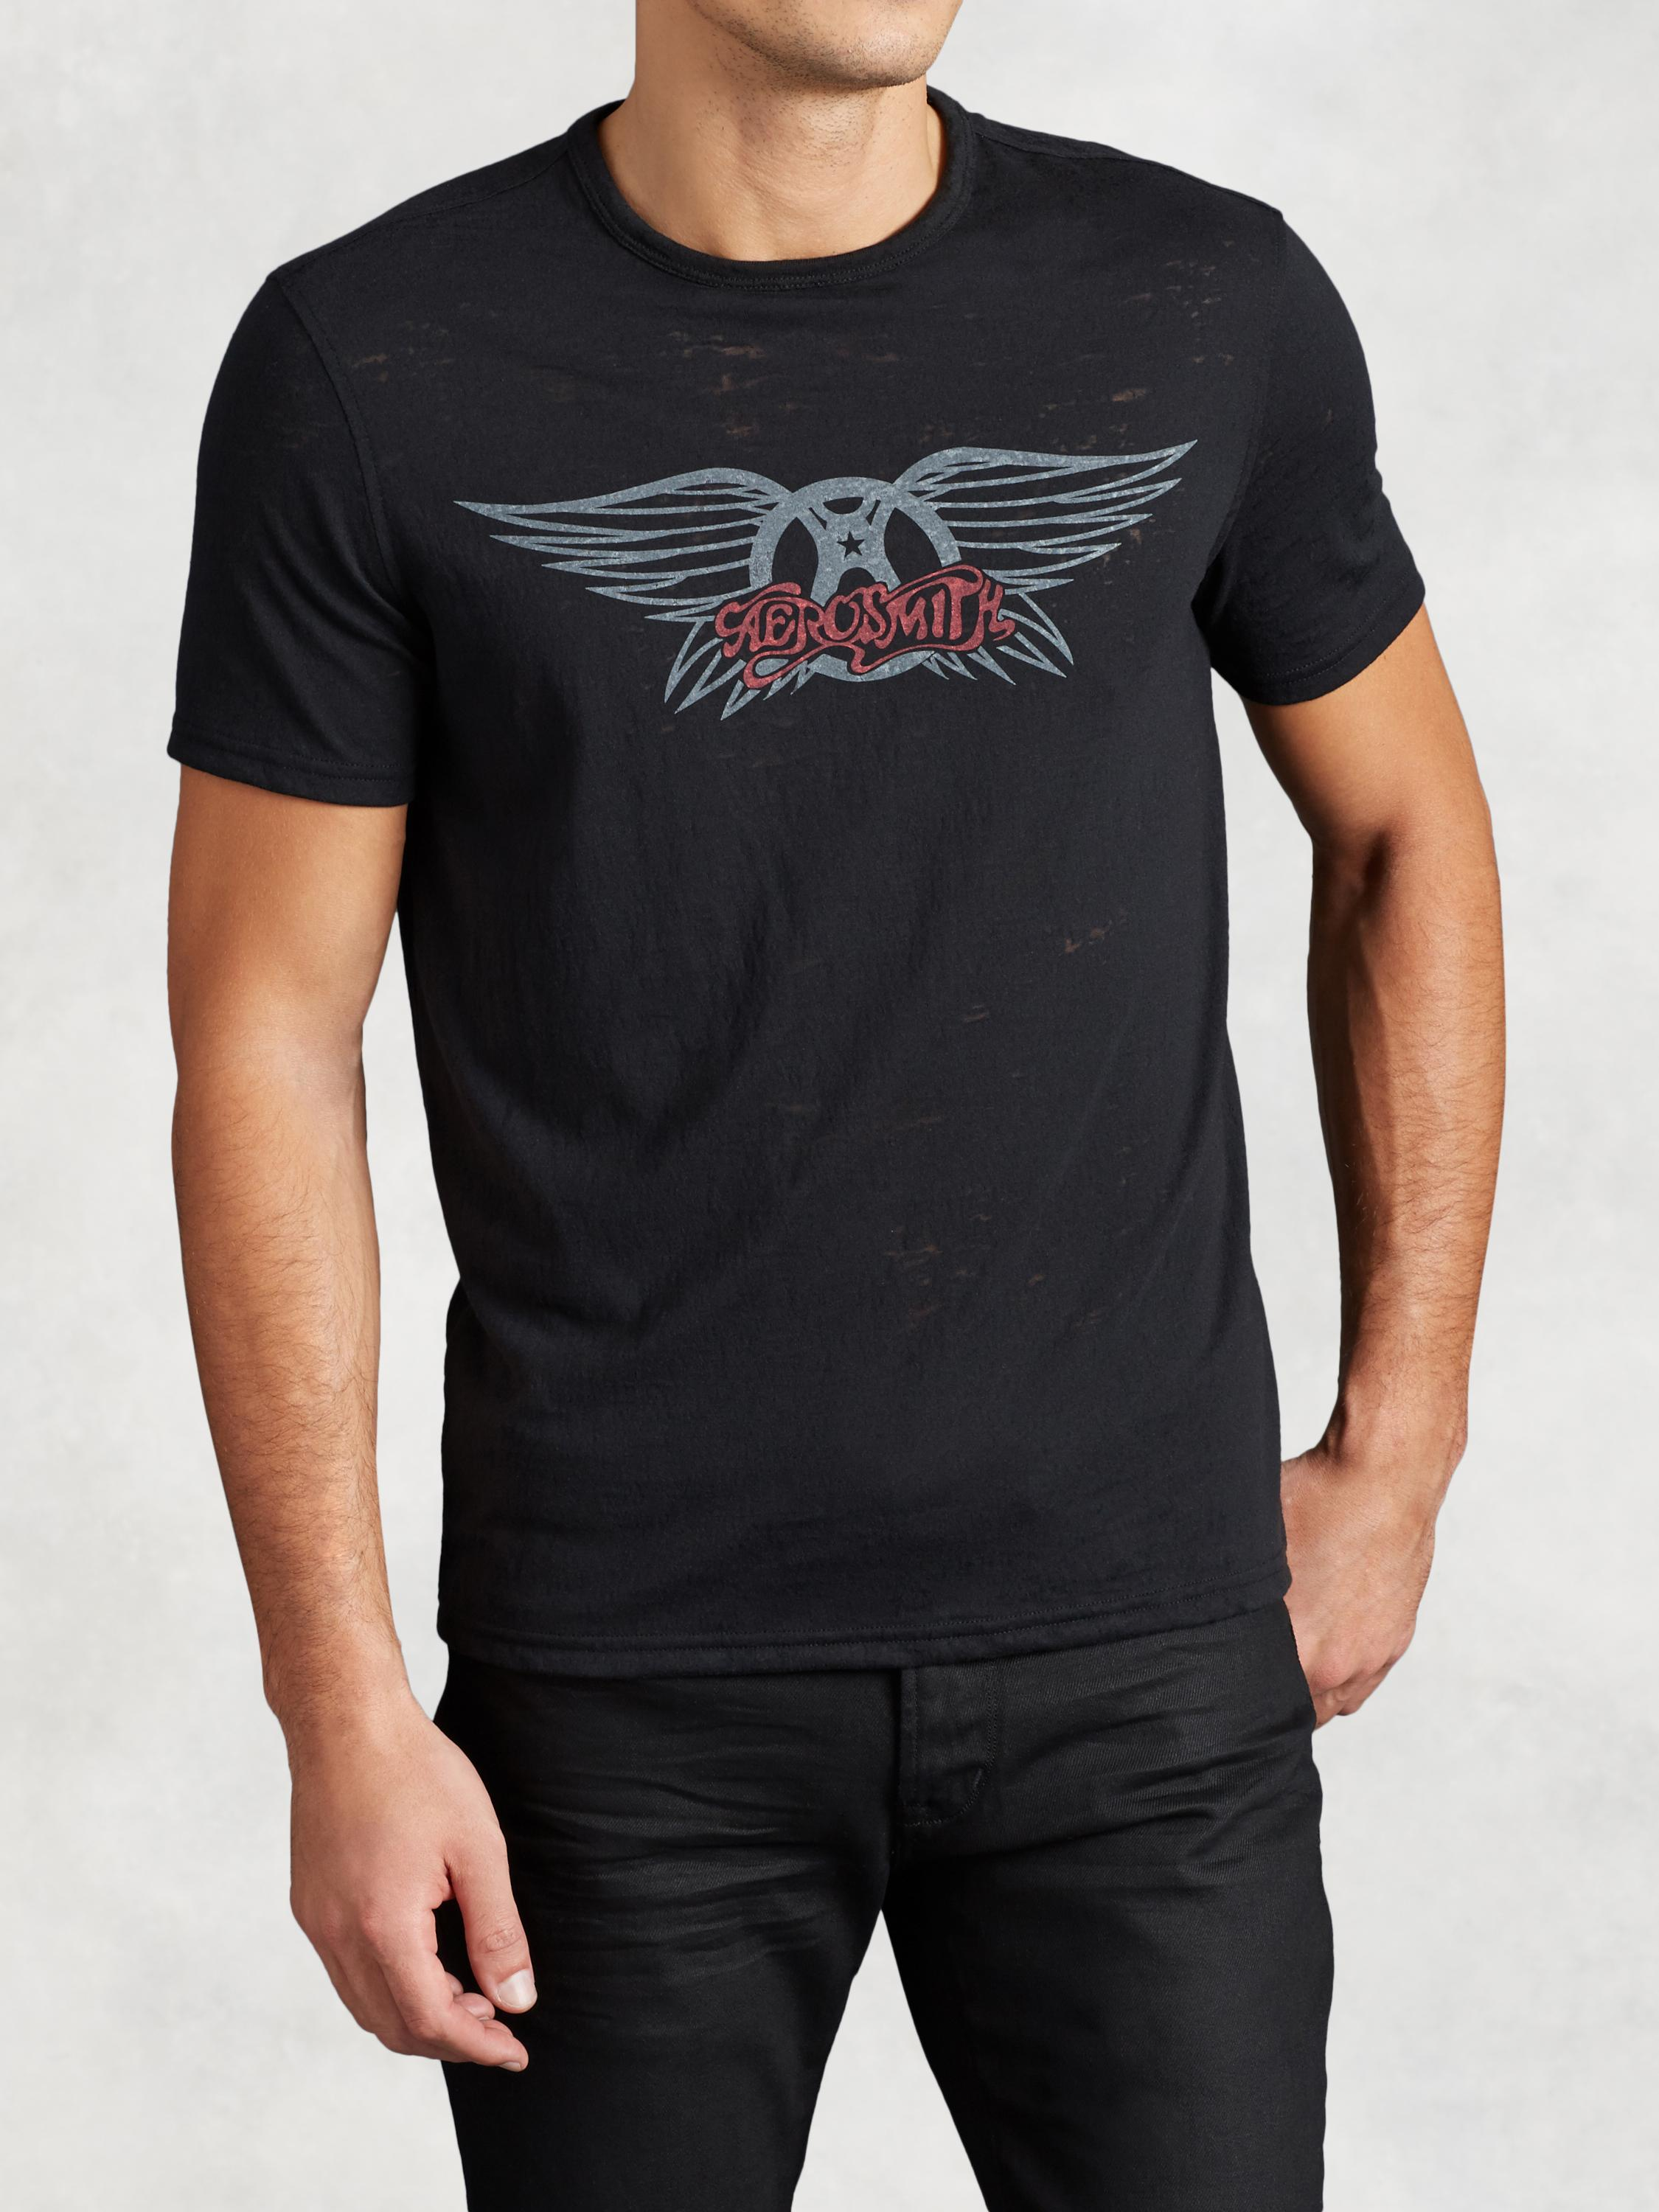 Aerosmith Wings Graphic Tee